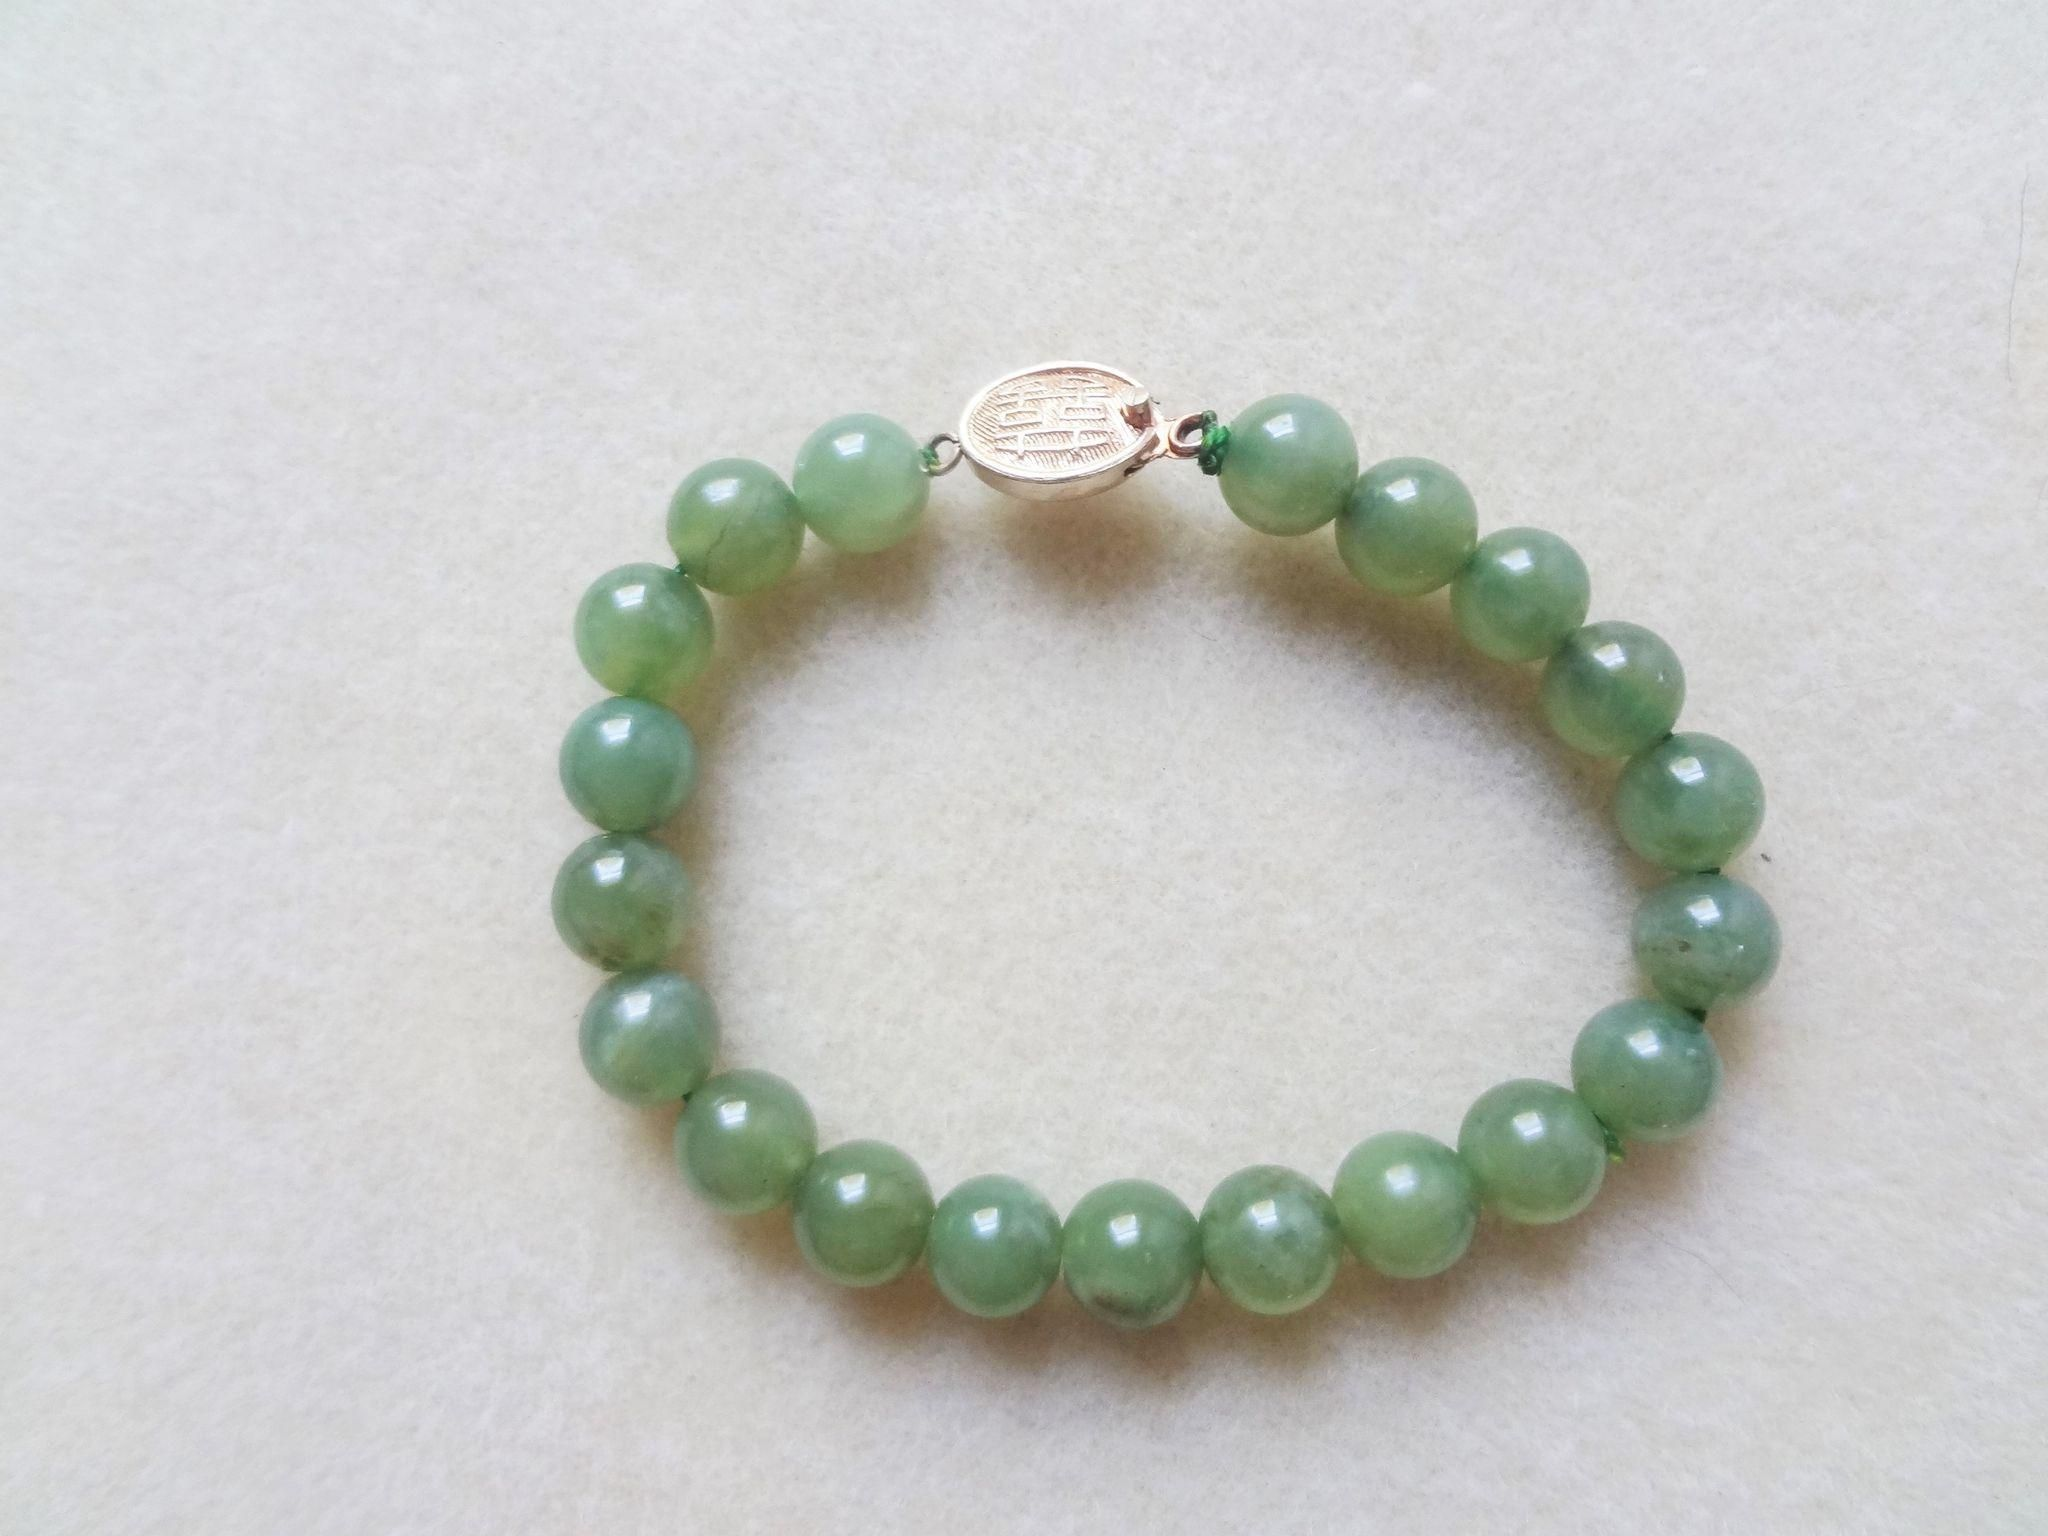 green bracelet aventurine gemstones en photo semiprecious jewelry handmade fashion stones free necklace natural turquoise crystal carved owls jewellery gemstone jade accessory gems beaded bead birds owl gift images